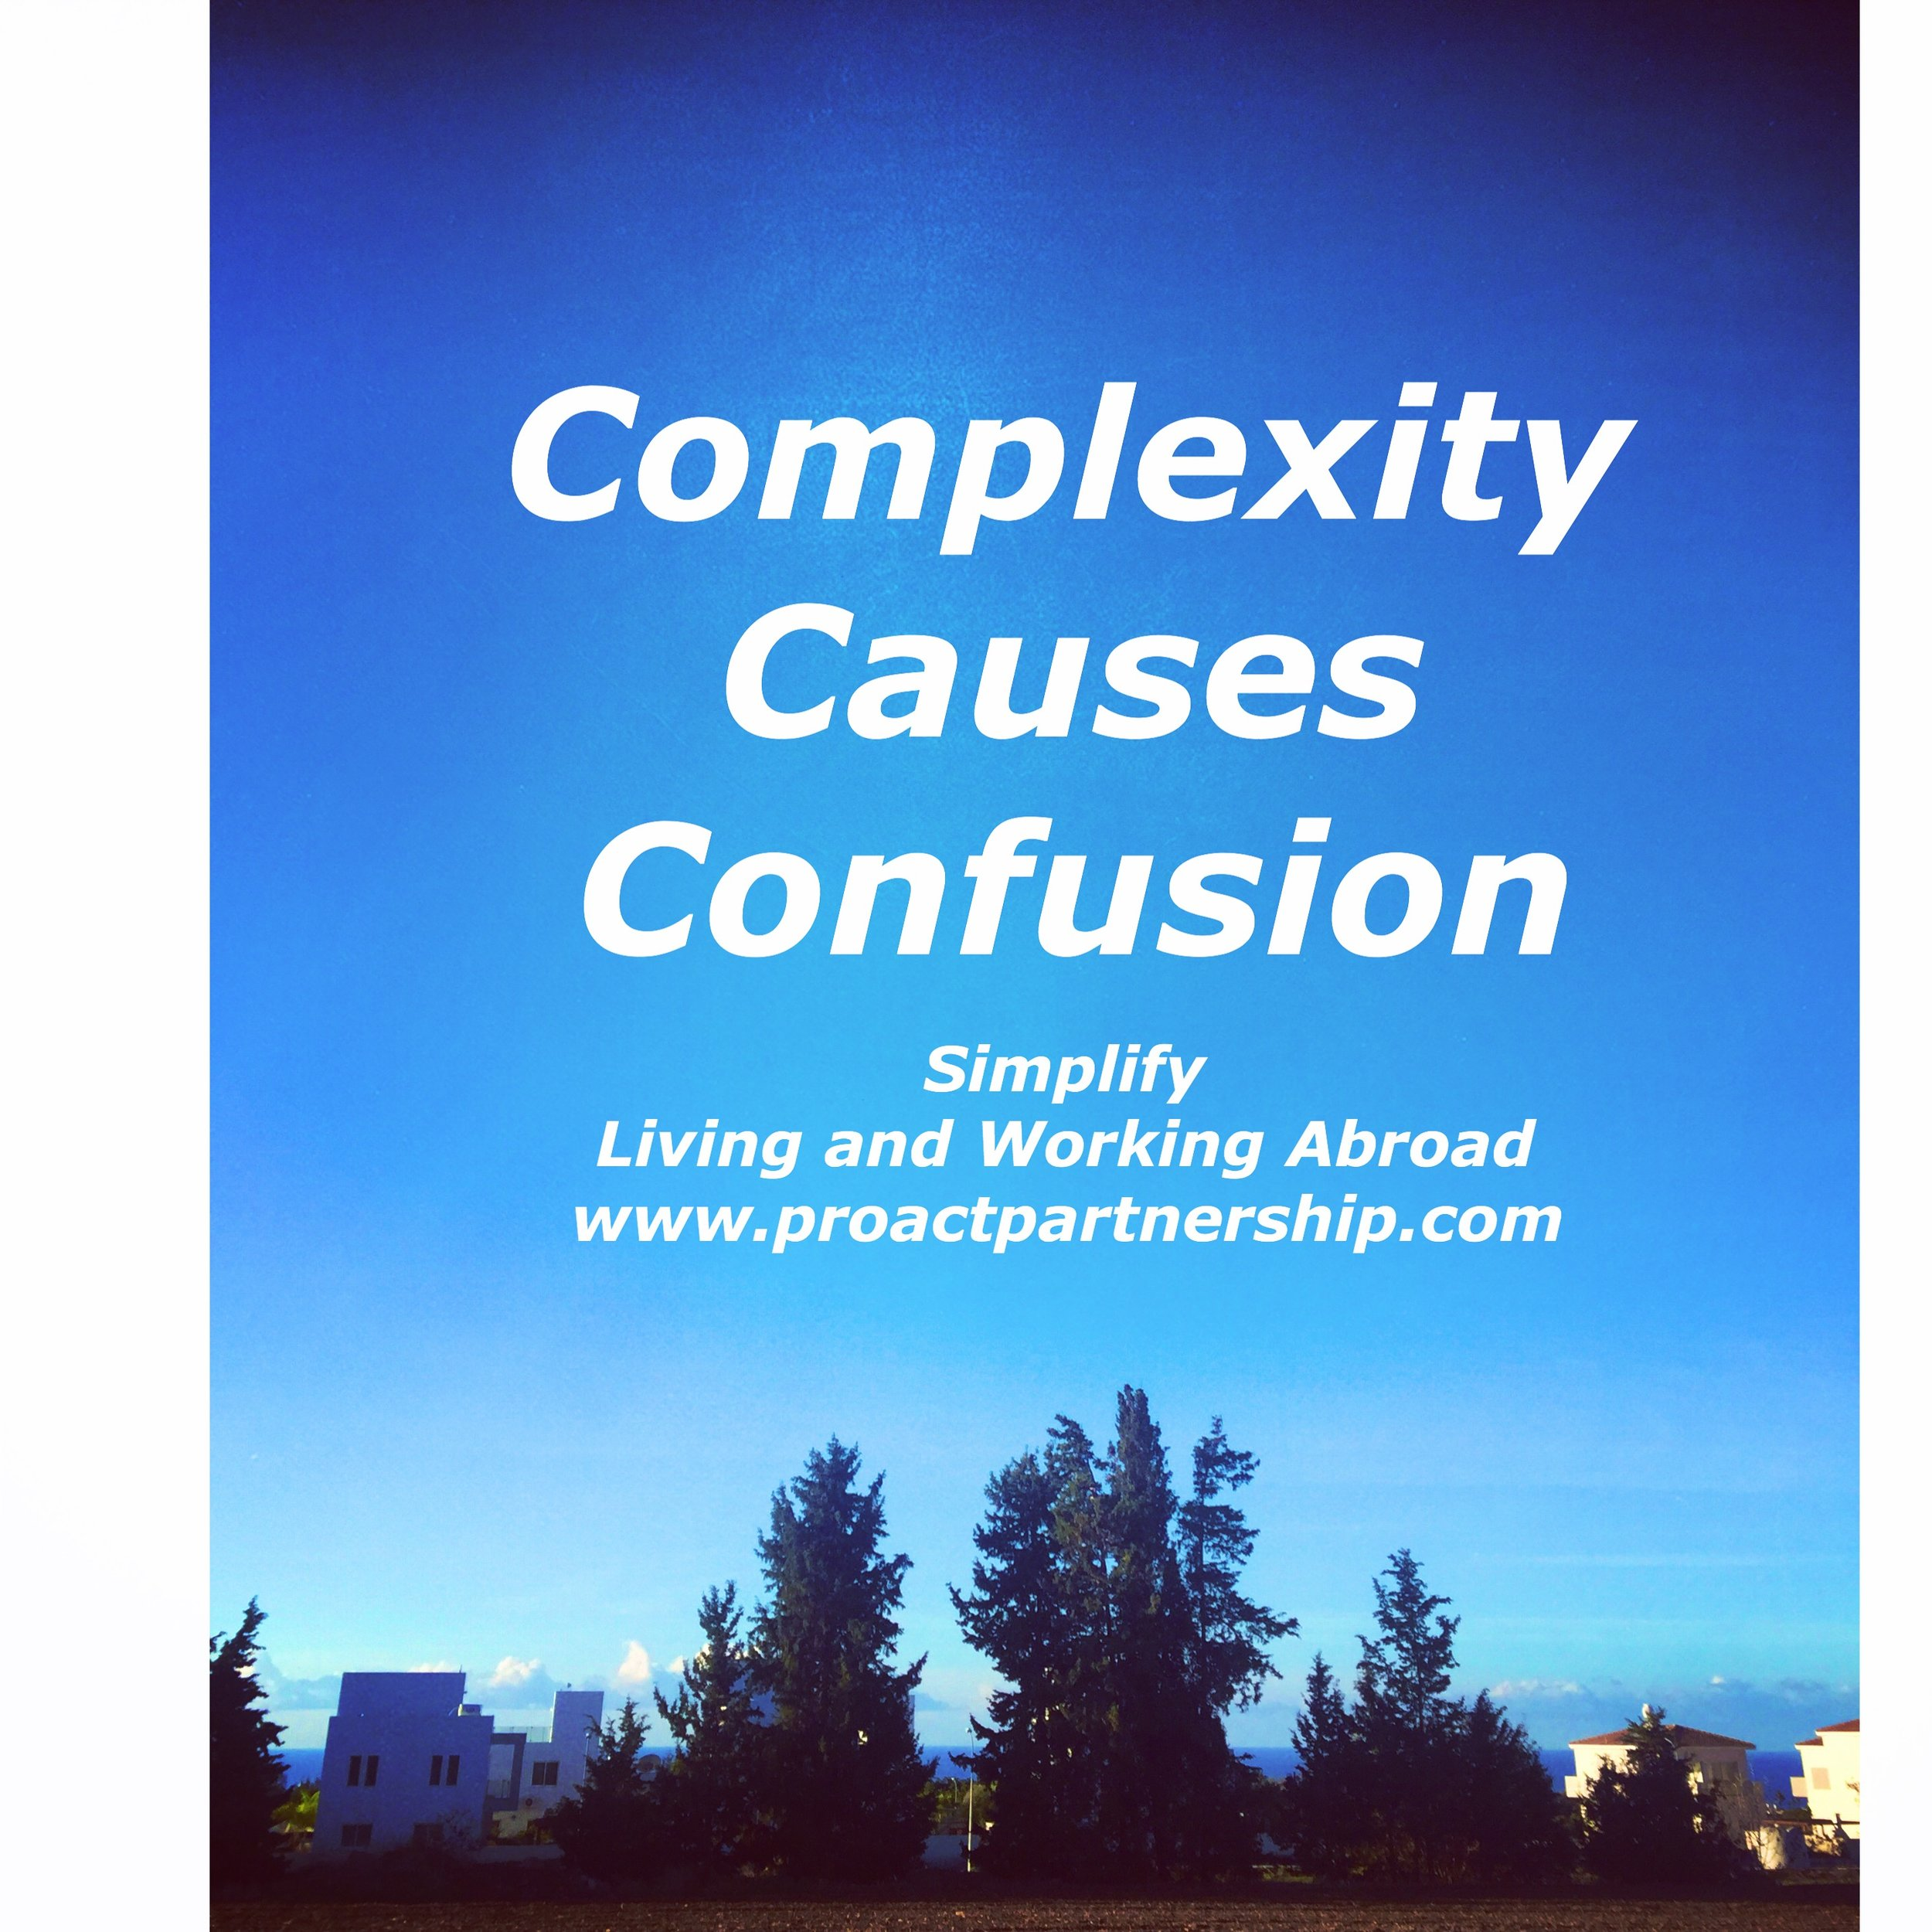 Complexity Causes Confusion.